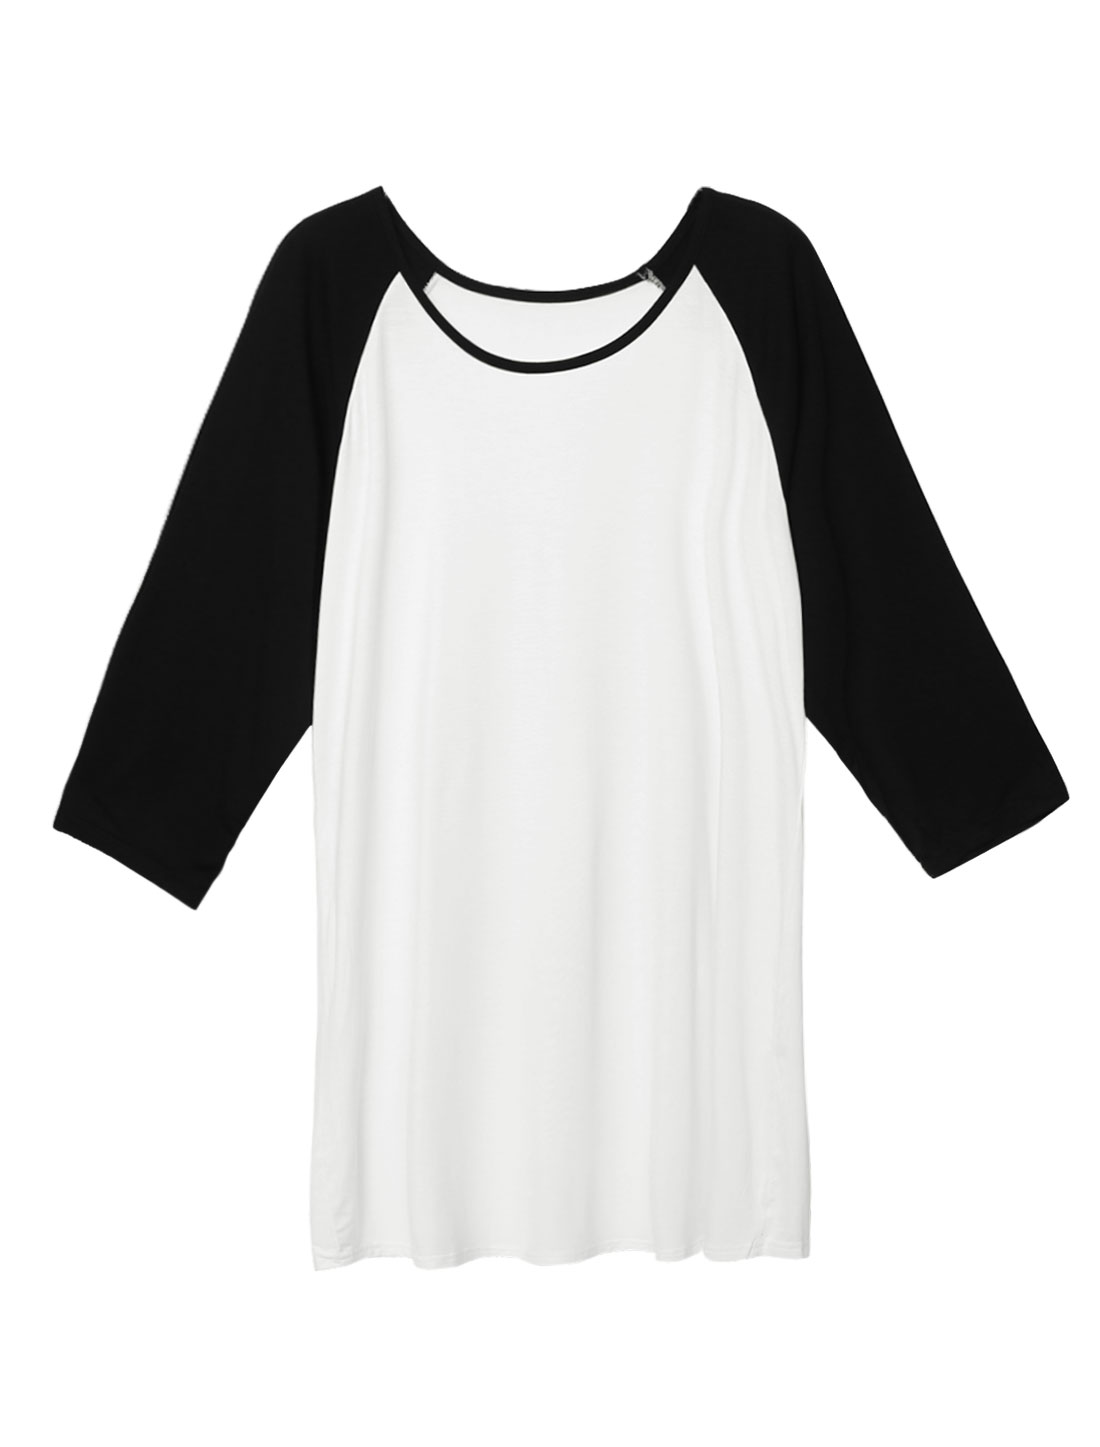 Women 3/4 Raglan Sleeves Contrast Color Tunic T-shirt White S